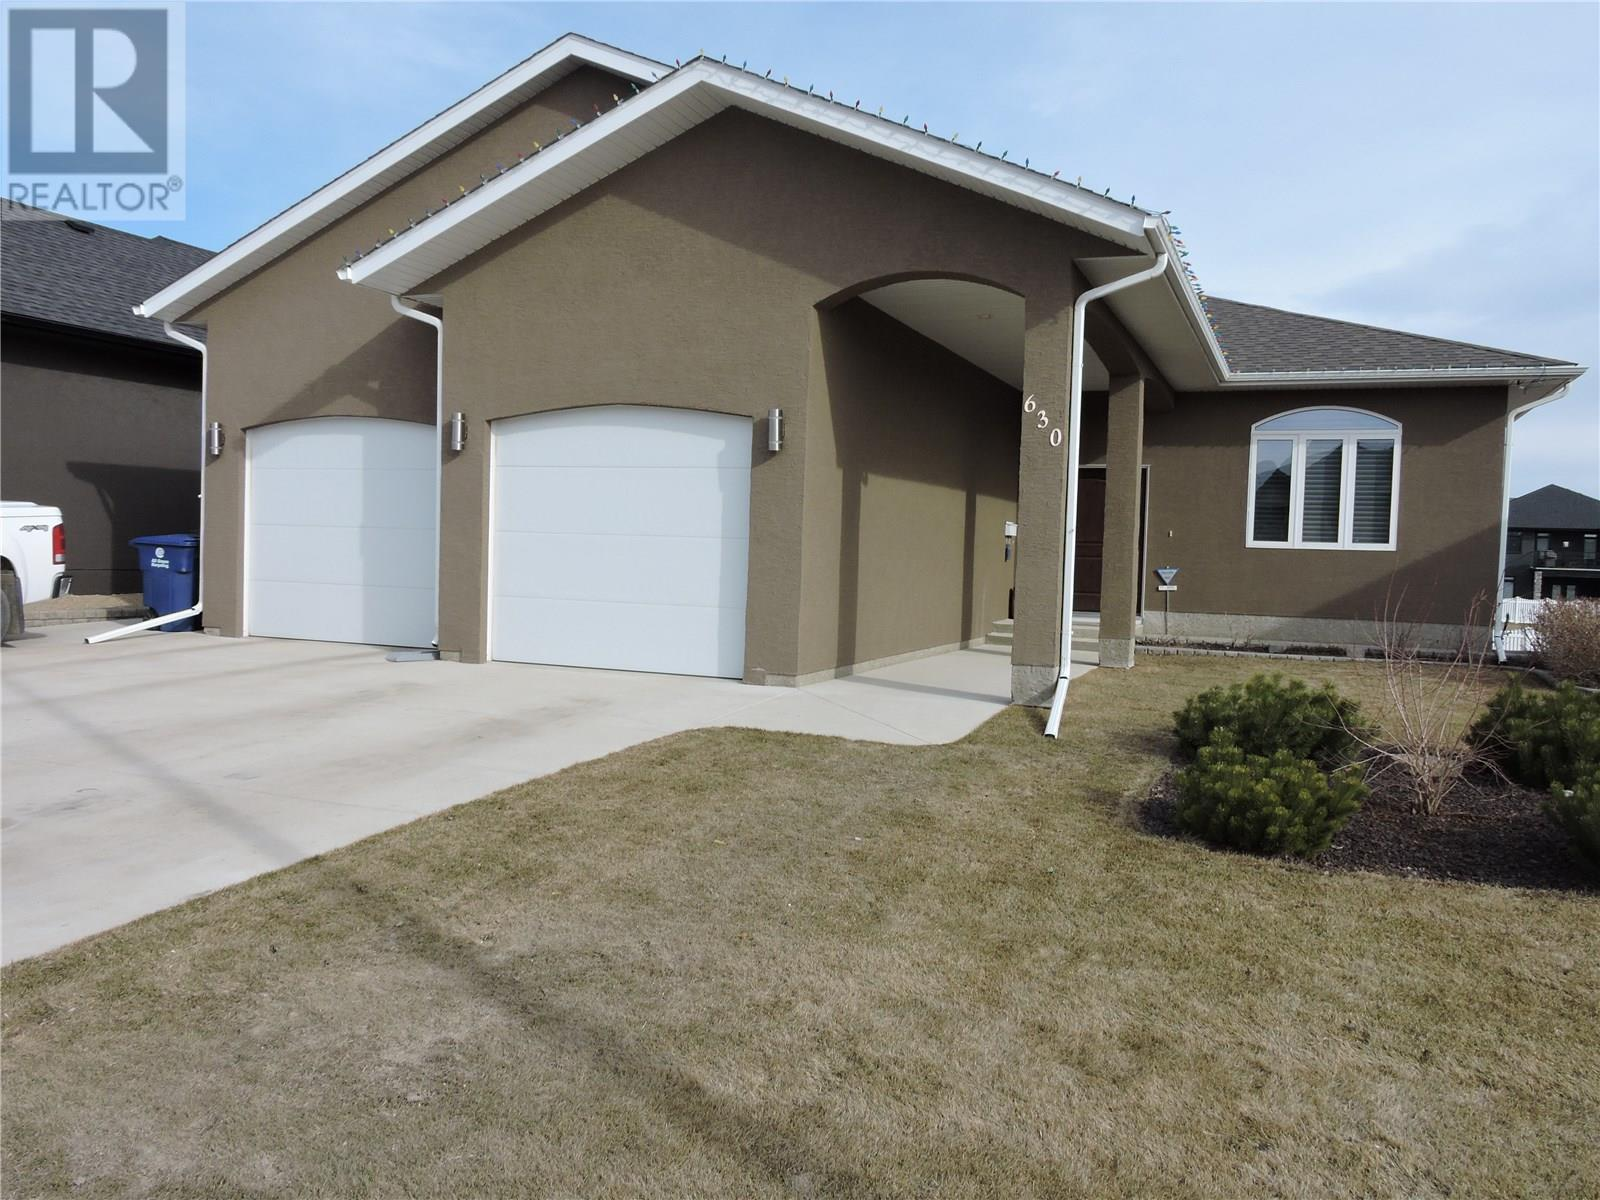 Removed: 630 Thiessen Street, Warman,  - Removed on 2019-05-24 22:57:25